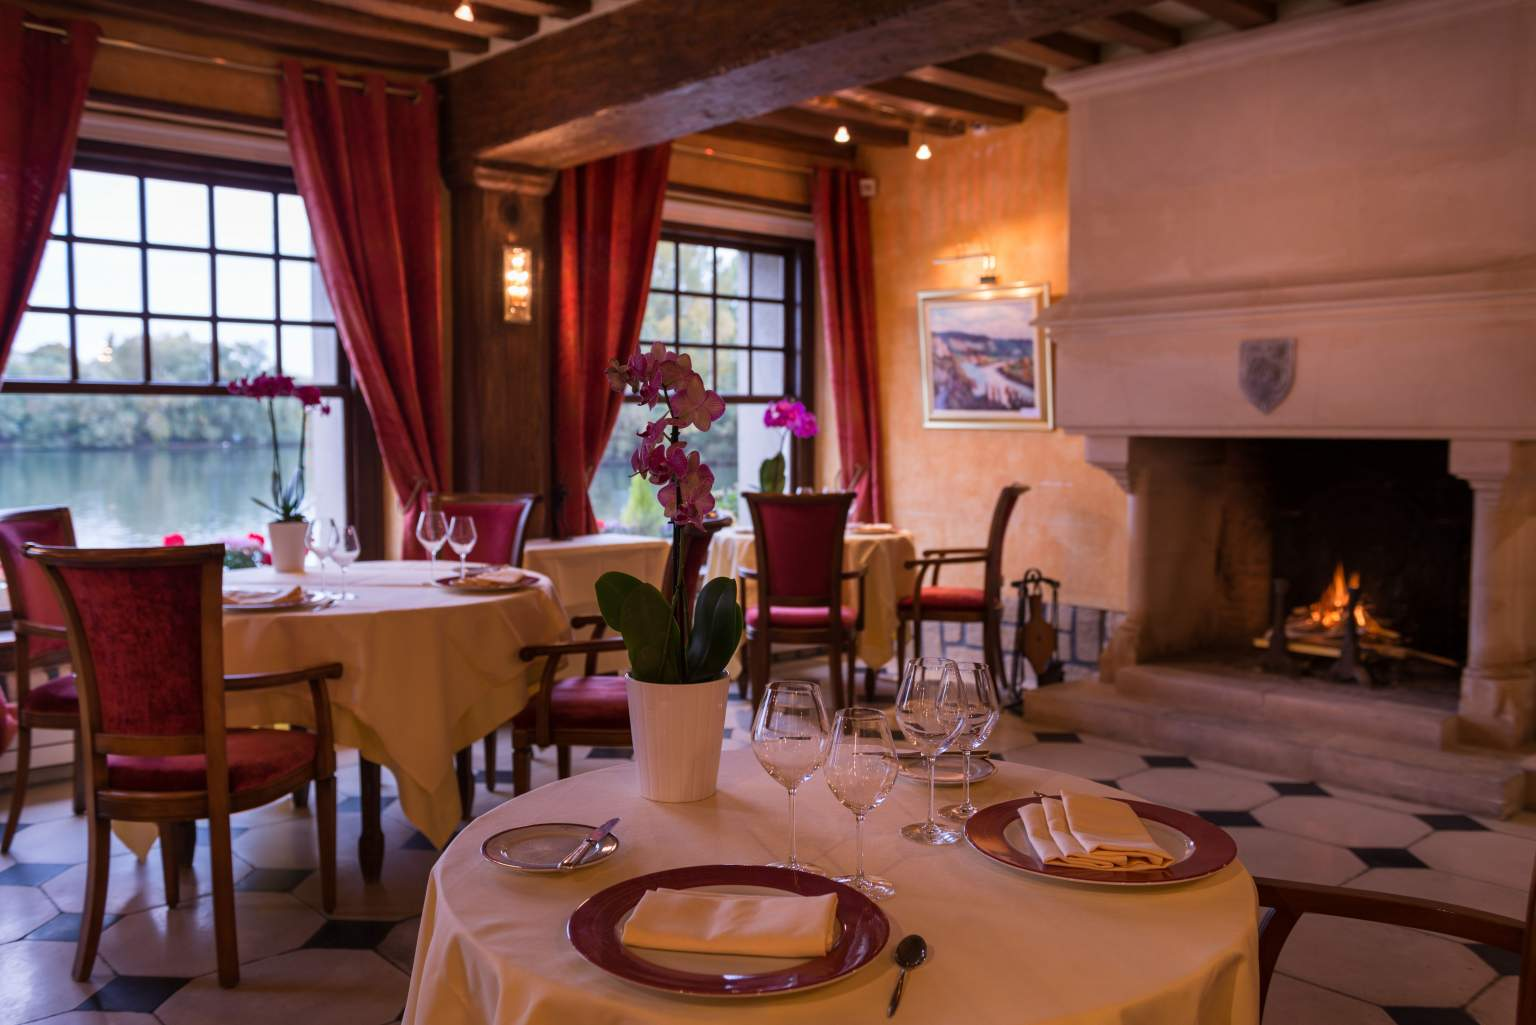 Restaurant available for private hire for your seminars and meetings